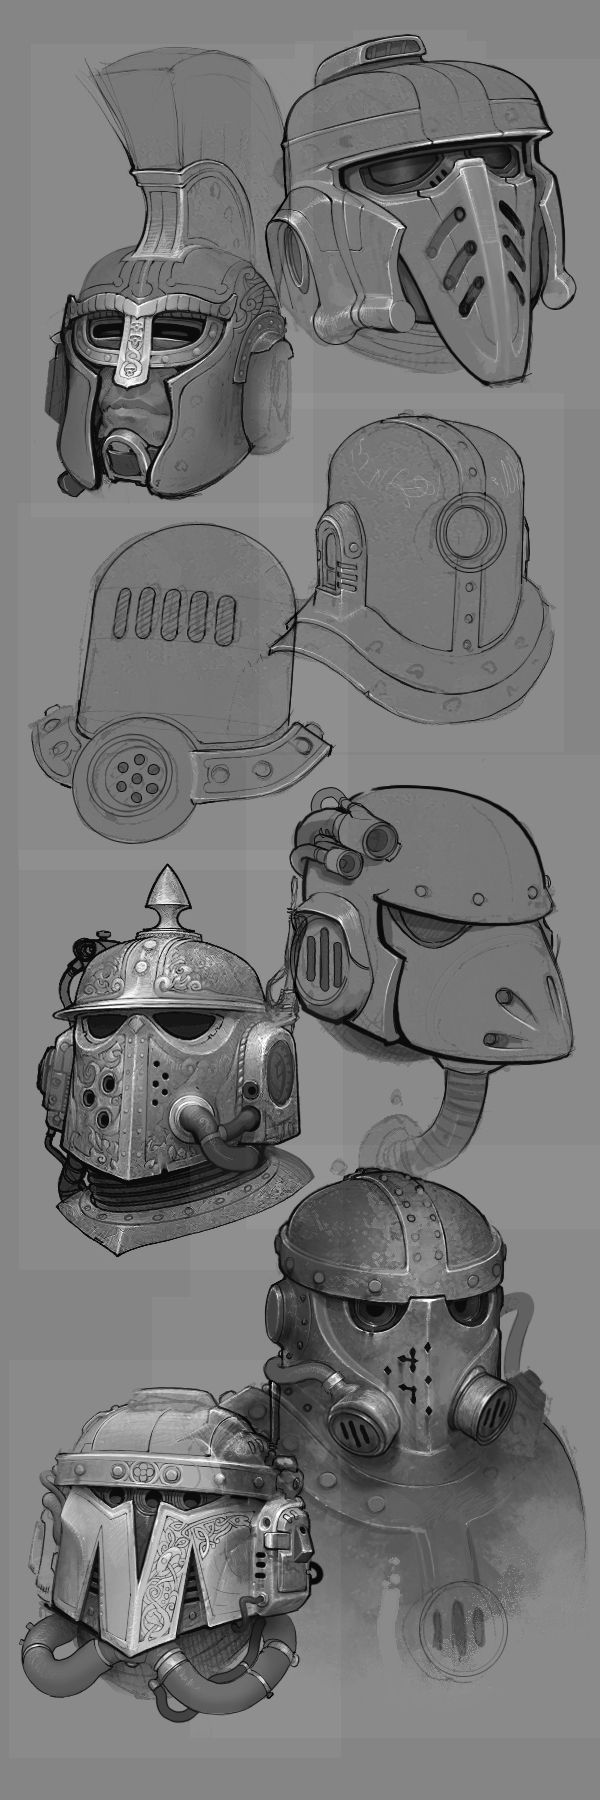 Space Marines by Ted Beargeon, via Behance